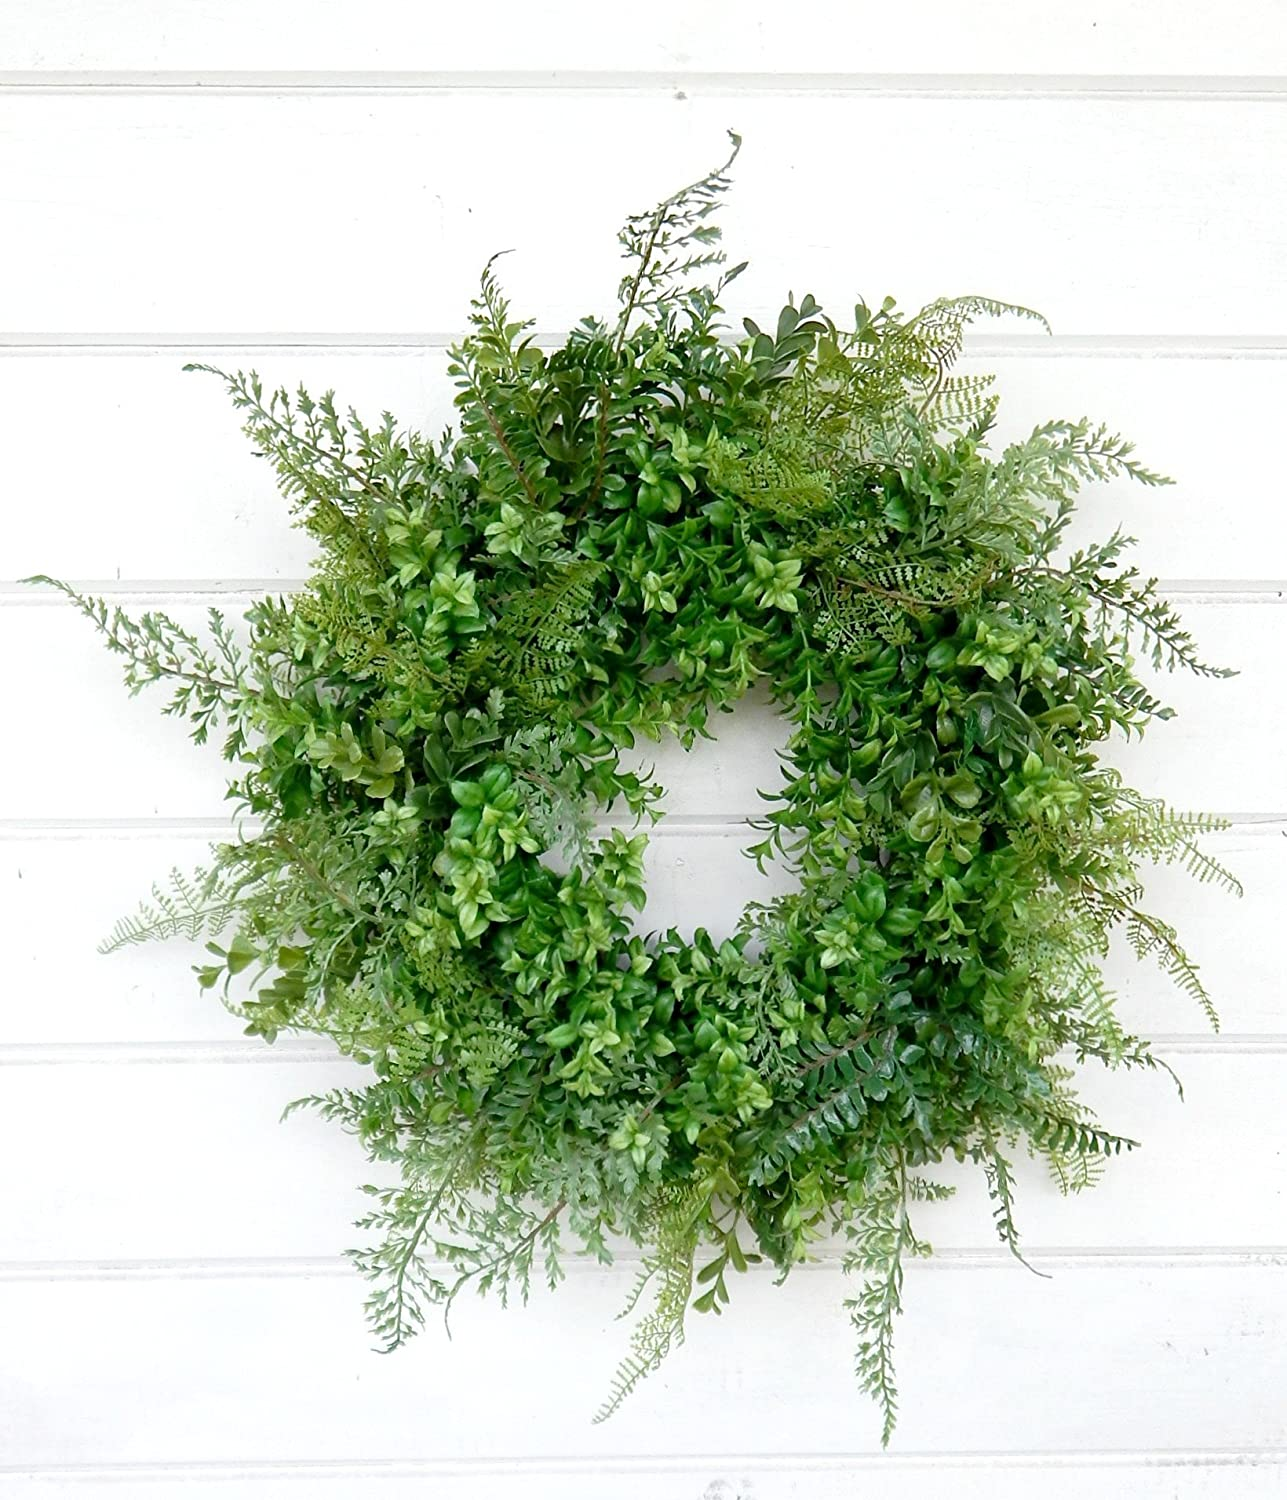 Boxwood Wreath, Fern Wreath, Fall Wreath, Year Round Wreath, Winter Wreath,Spring Wreath,Summer Wreath,Farmhouse Wreath, Home Decor, Housewarming Gift, Door Wreath, Fixer Upper Decor, Farmhouse Decor